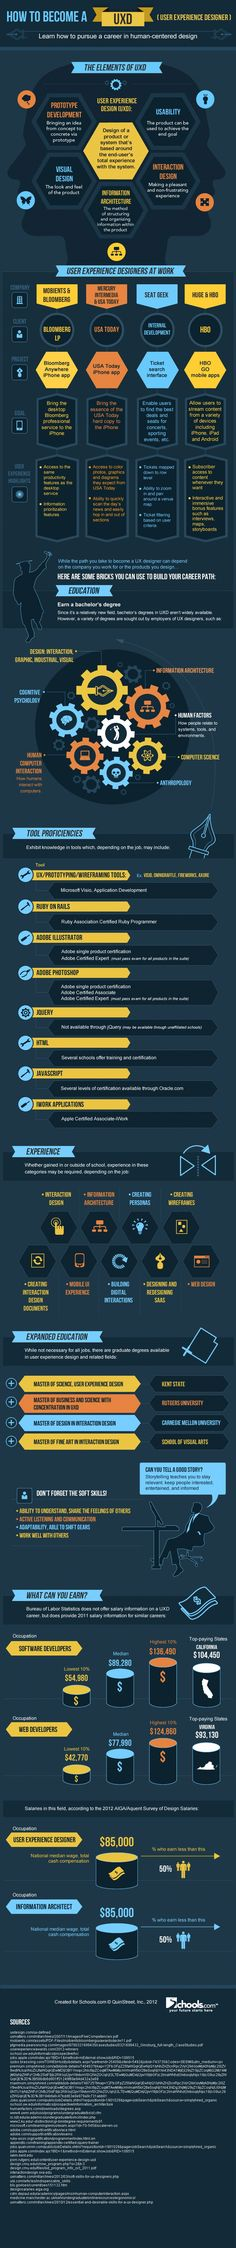 How to Become a UX Designer - Infographic